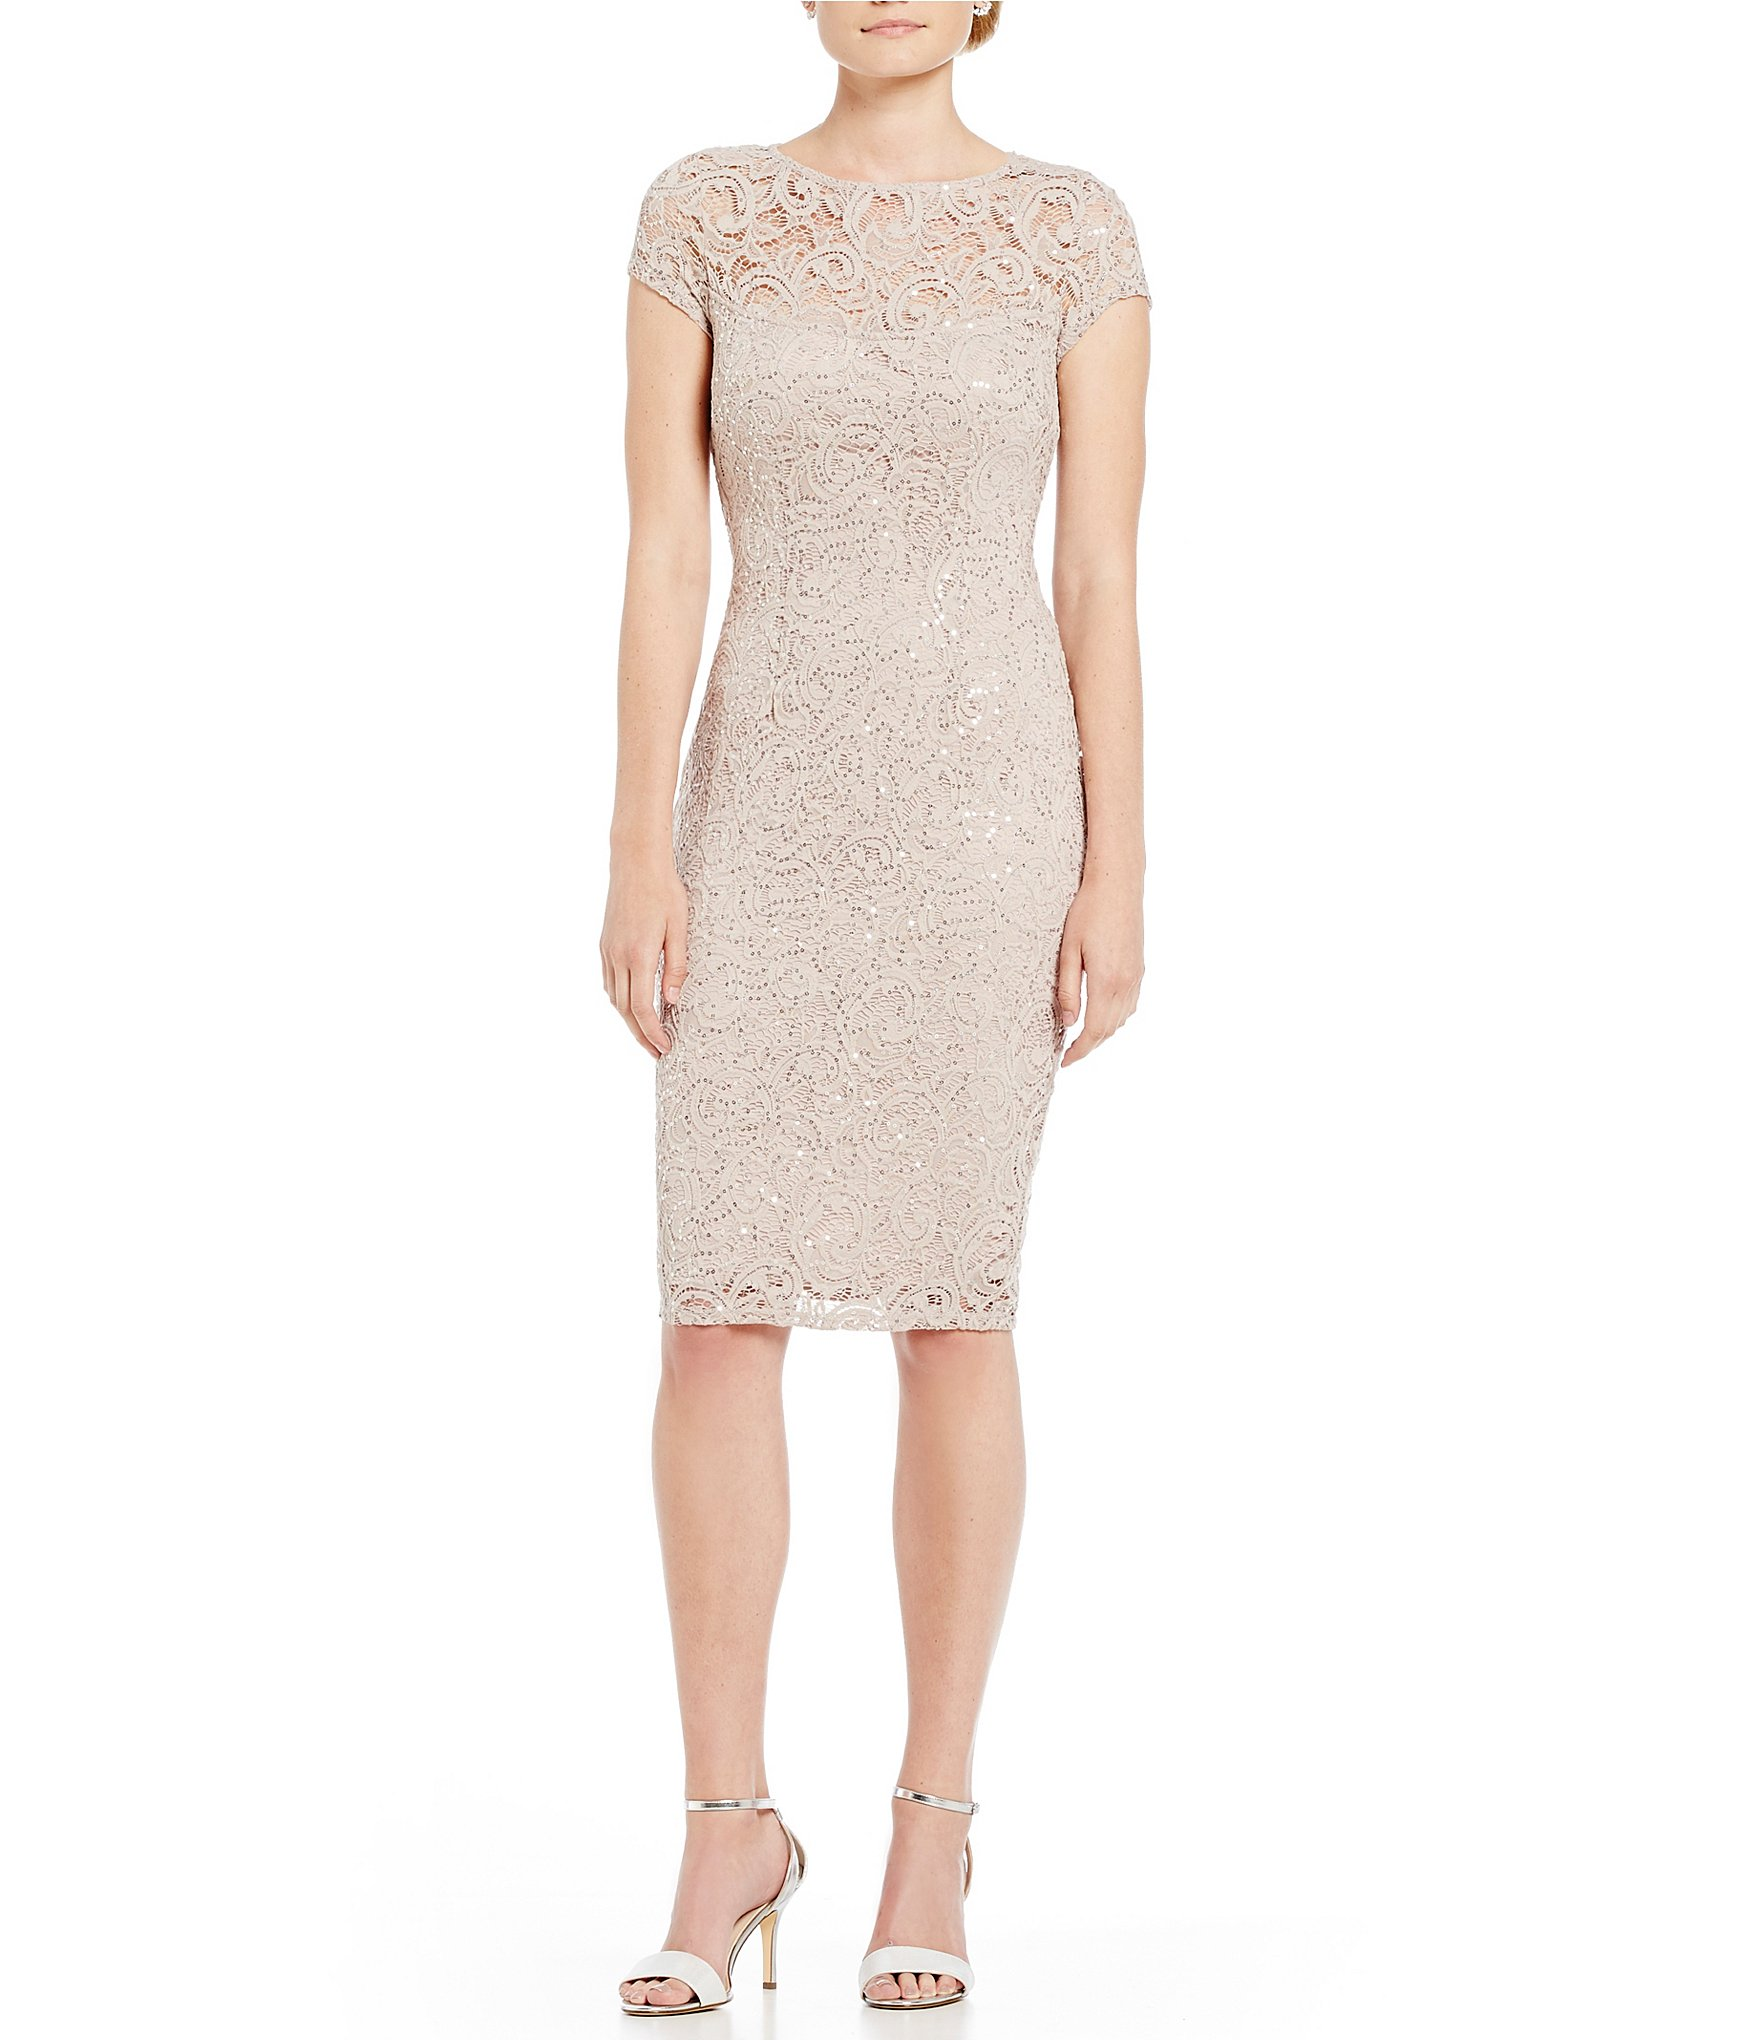 Taupe colored lace dress